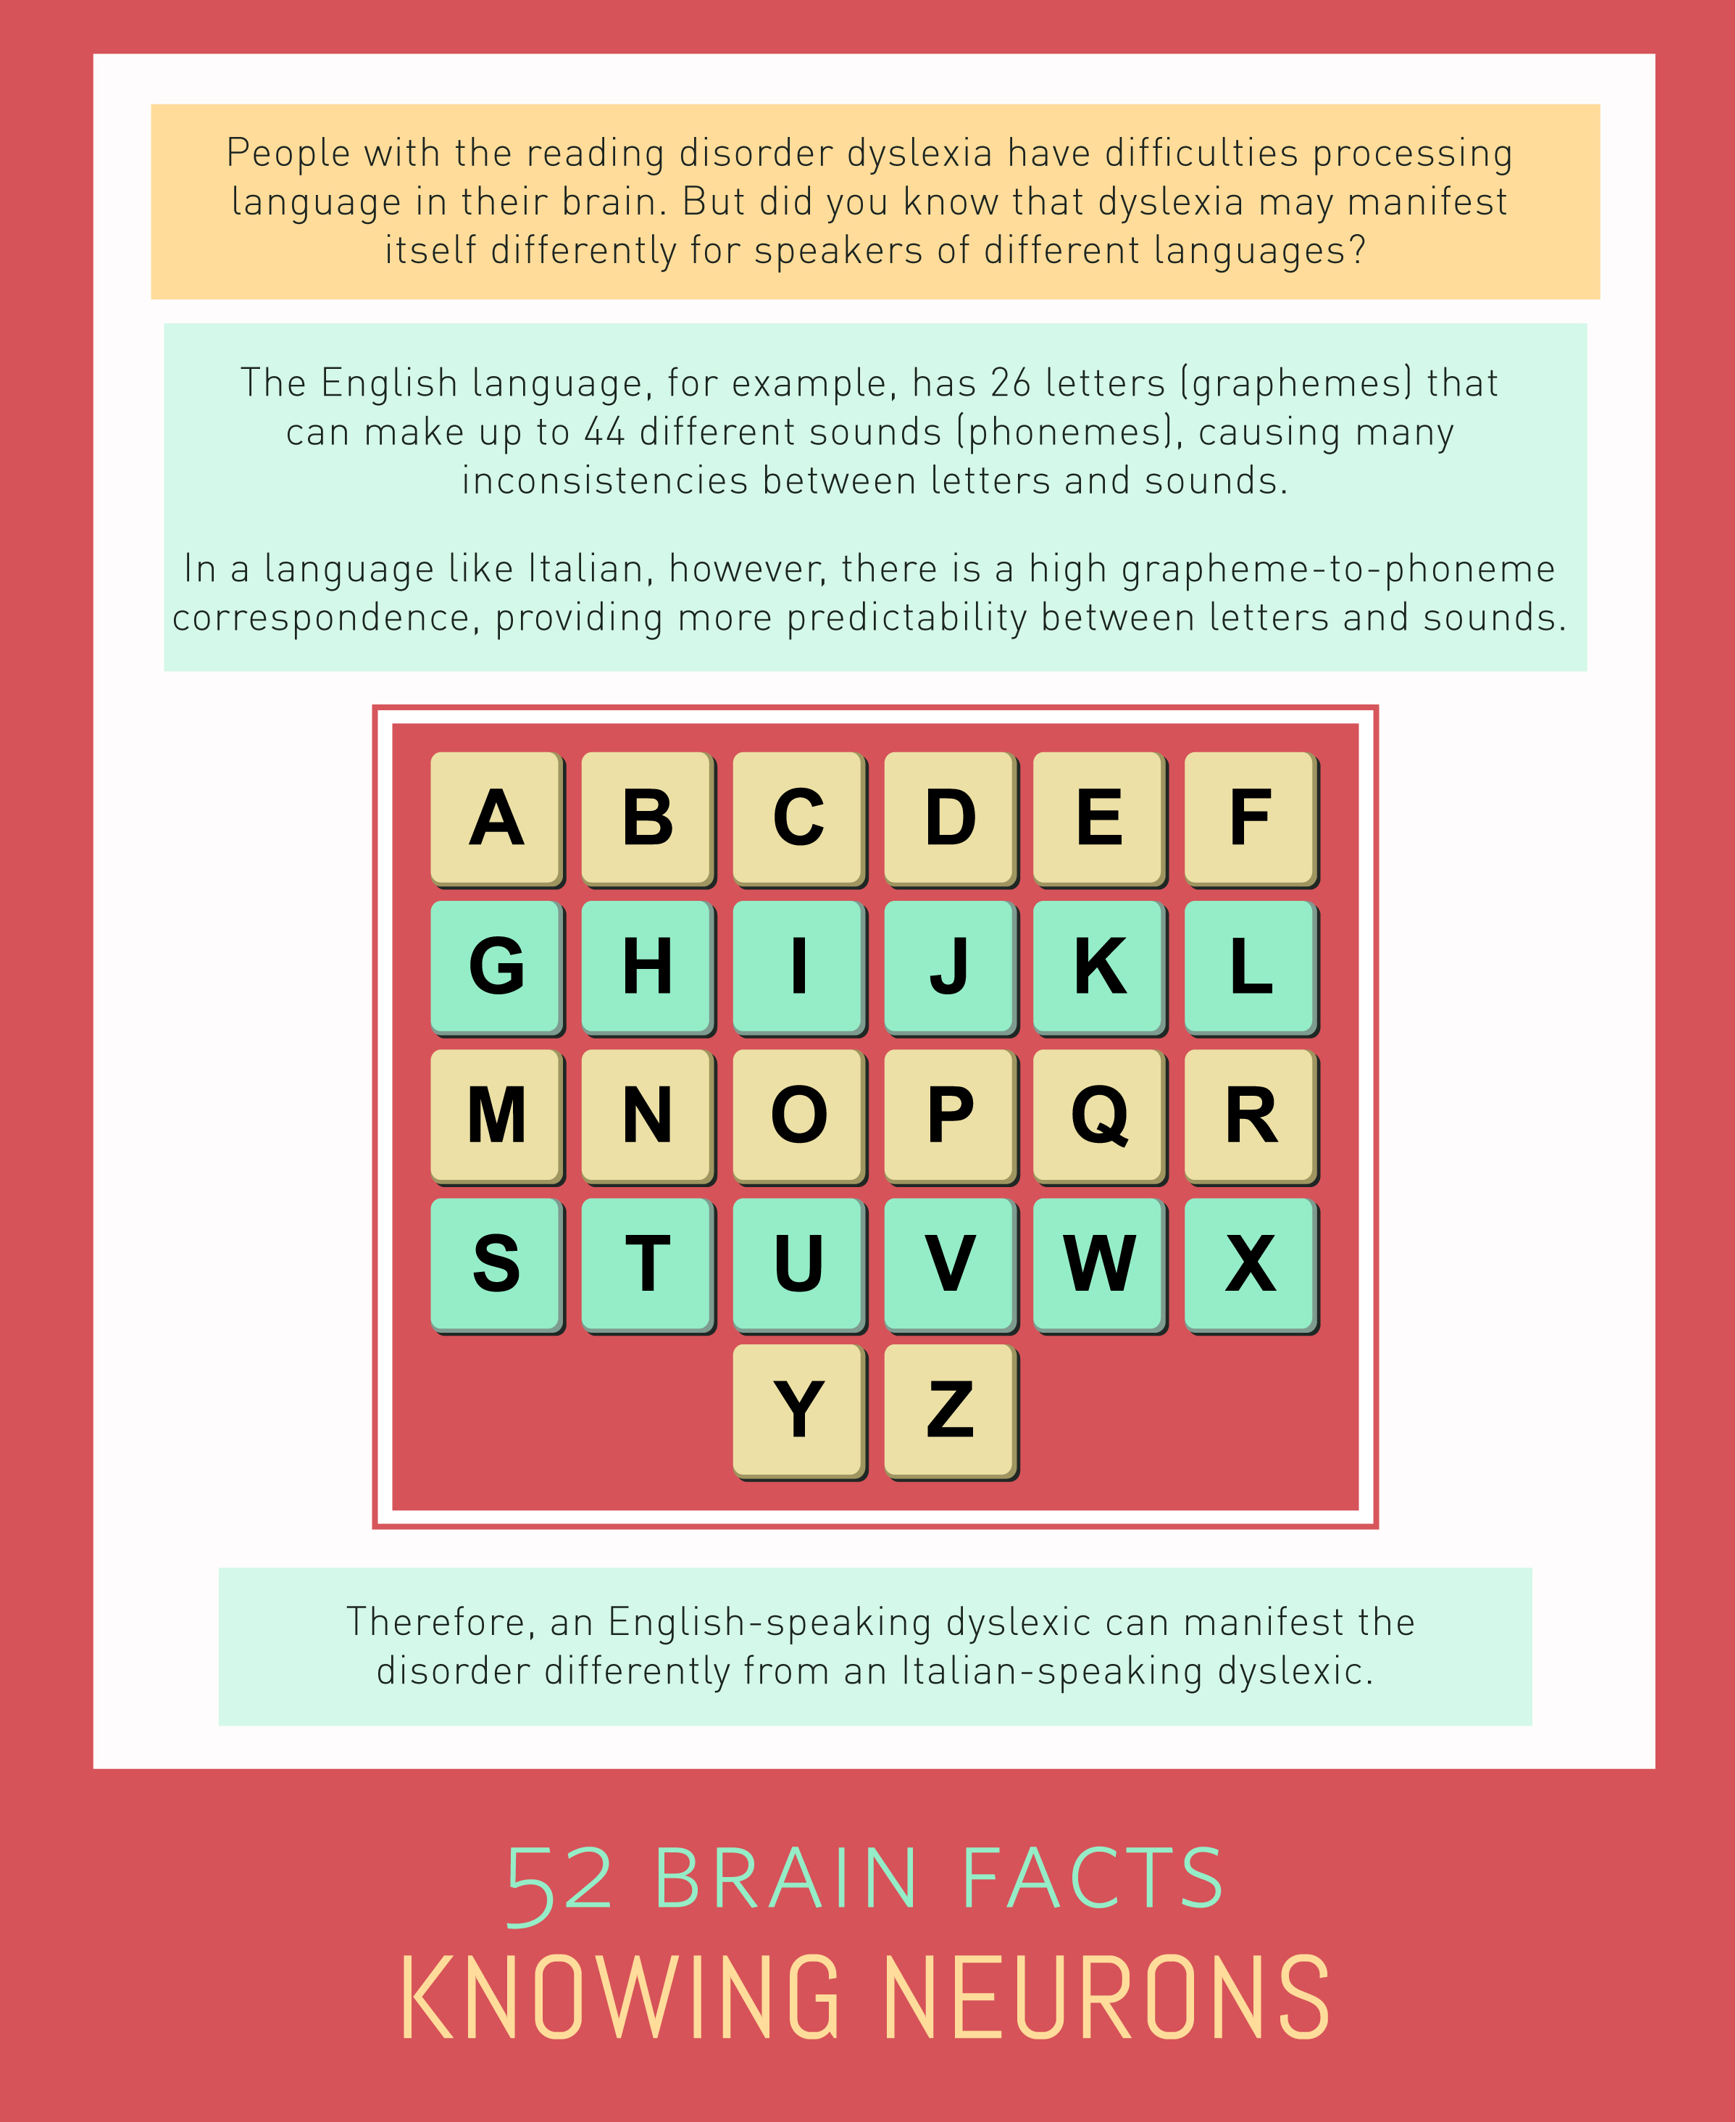 Myth Or Fact? Dyslexia Varies Across Different Languages.